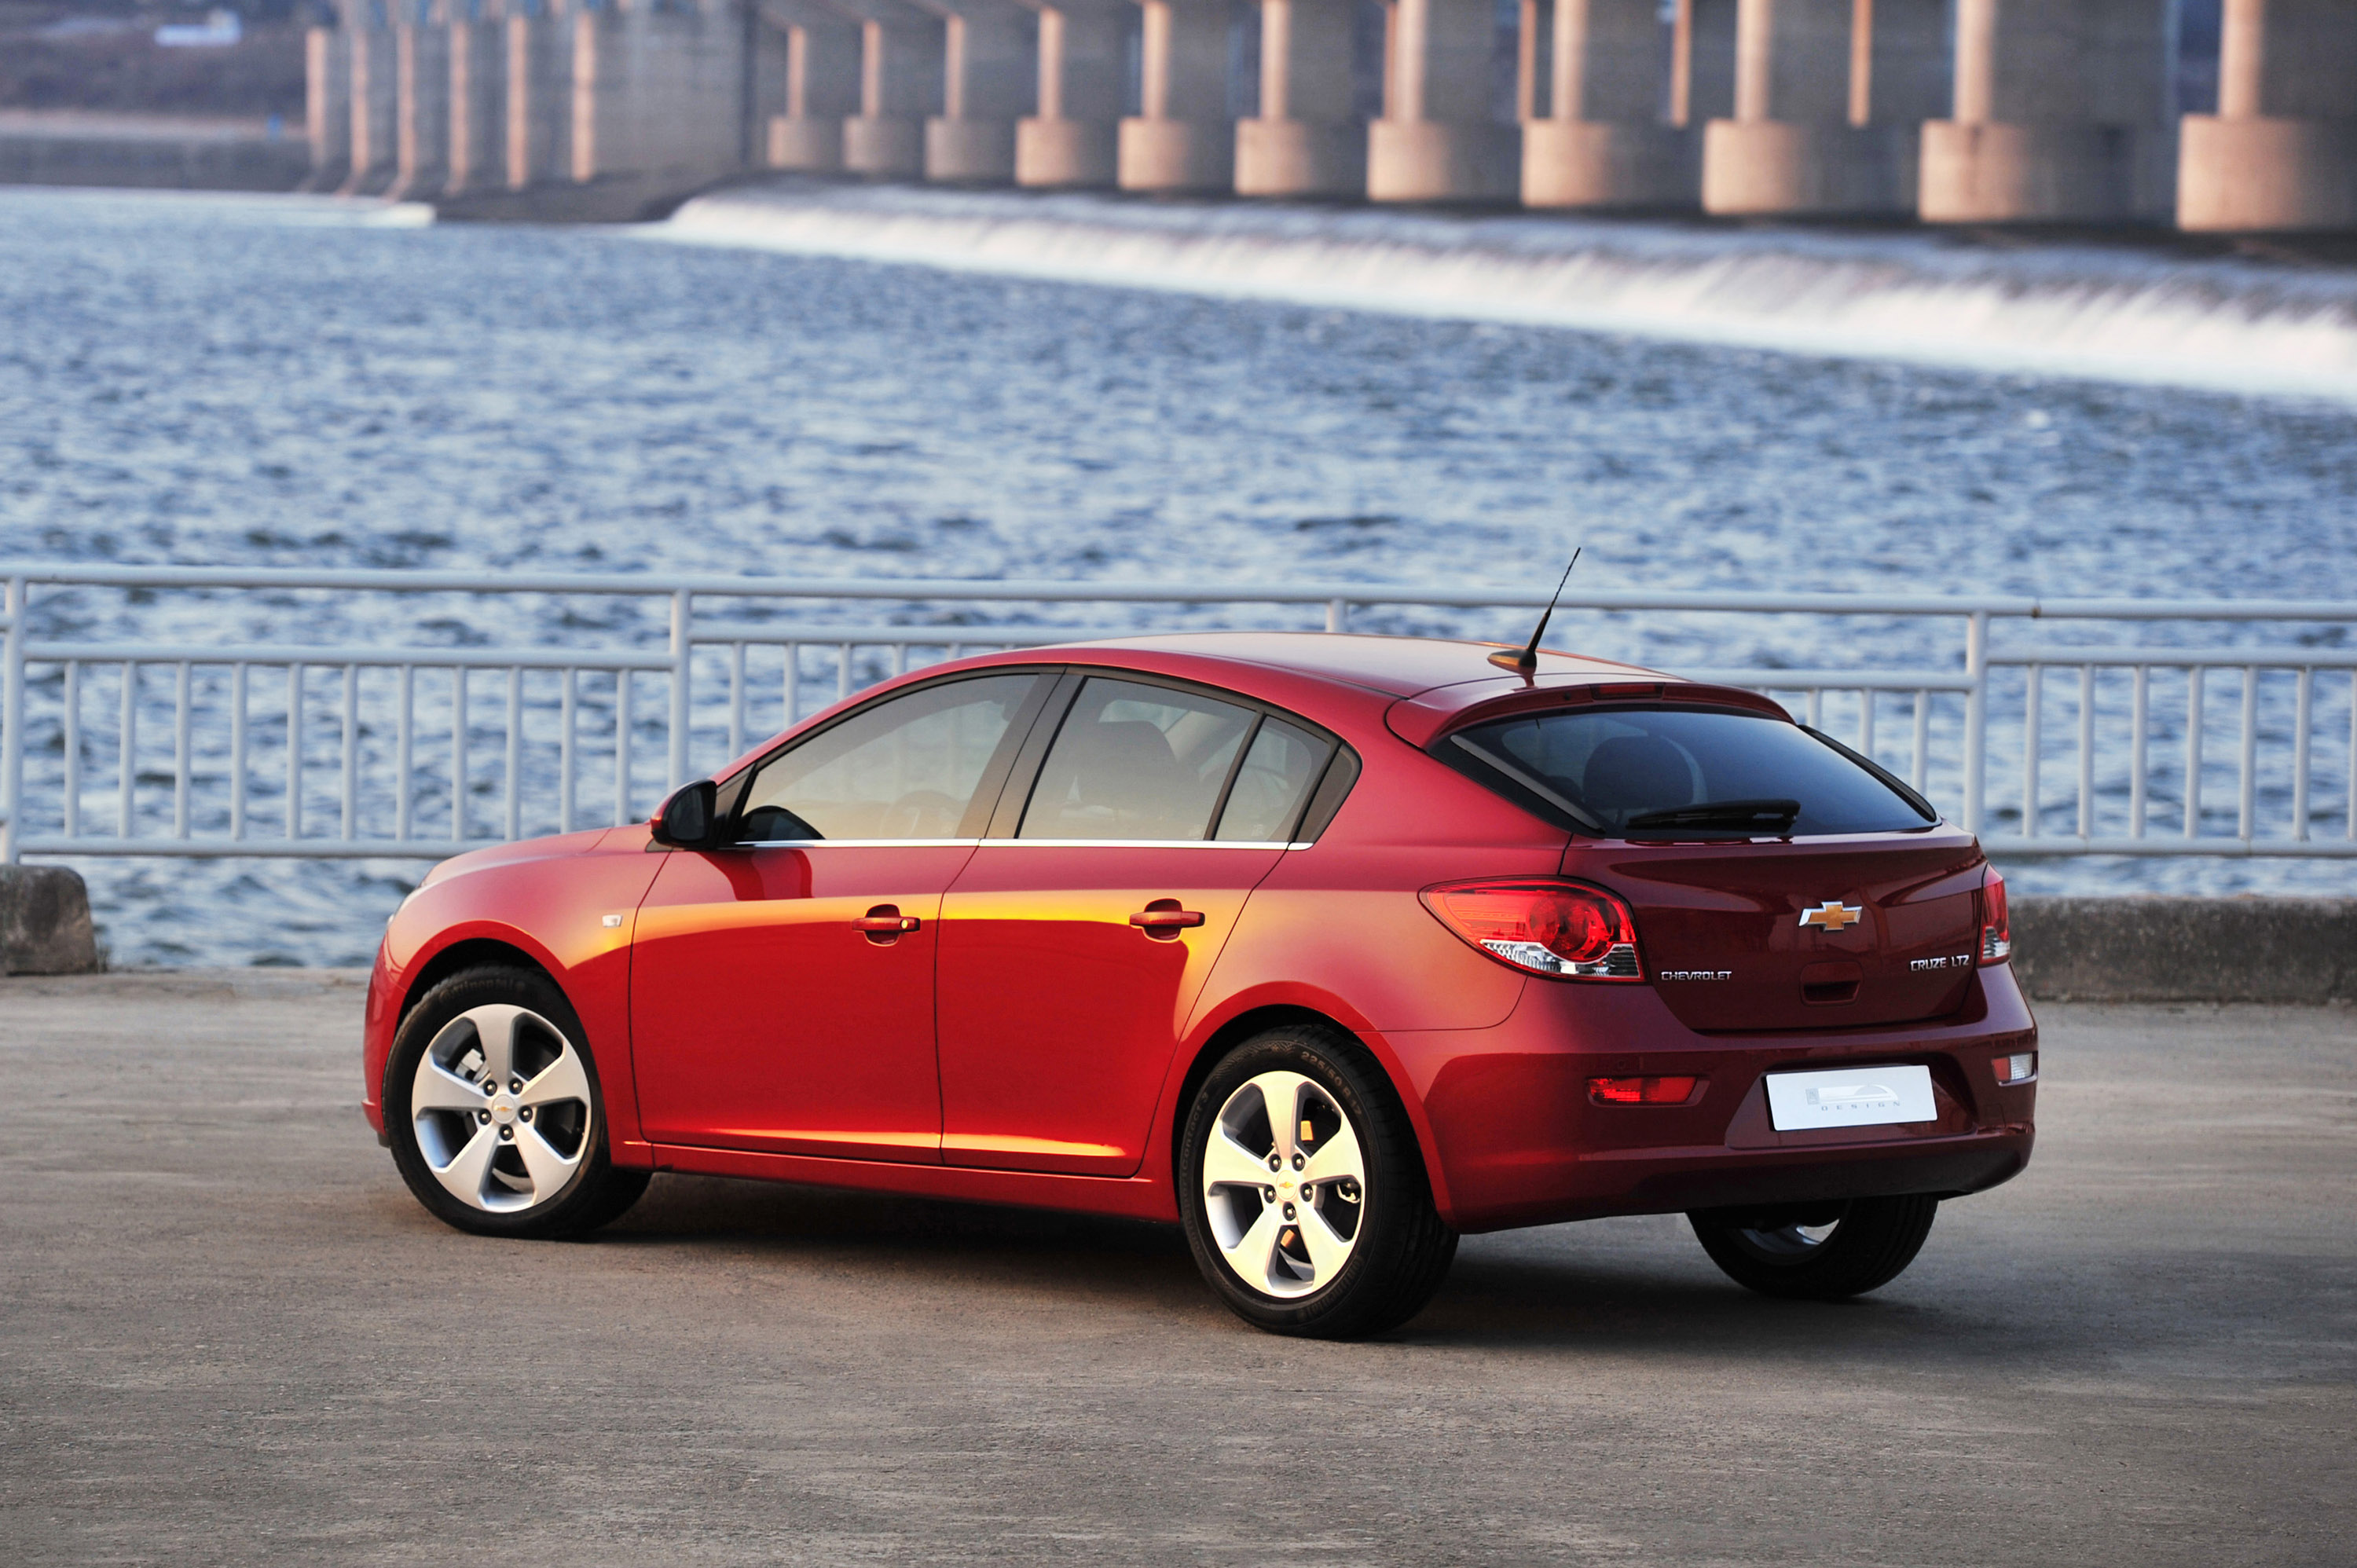 2012 chevrolet cruze hatchback price 13 995. Black Bedroom Furniture Sets. Home Design Ideas